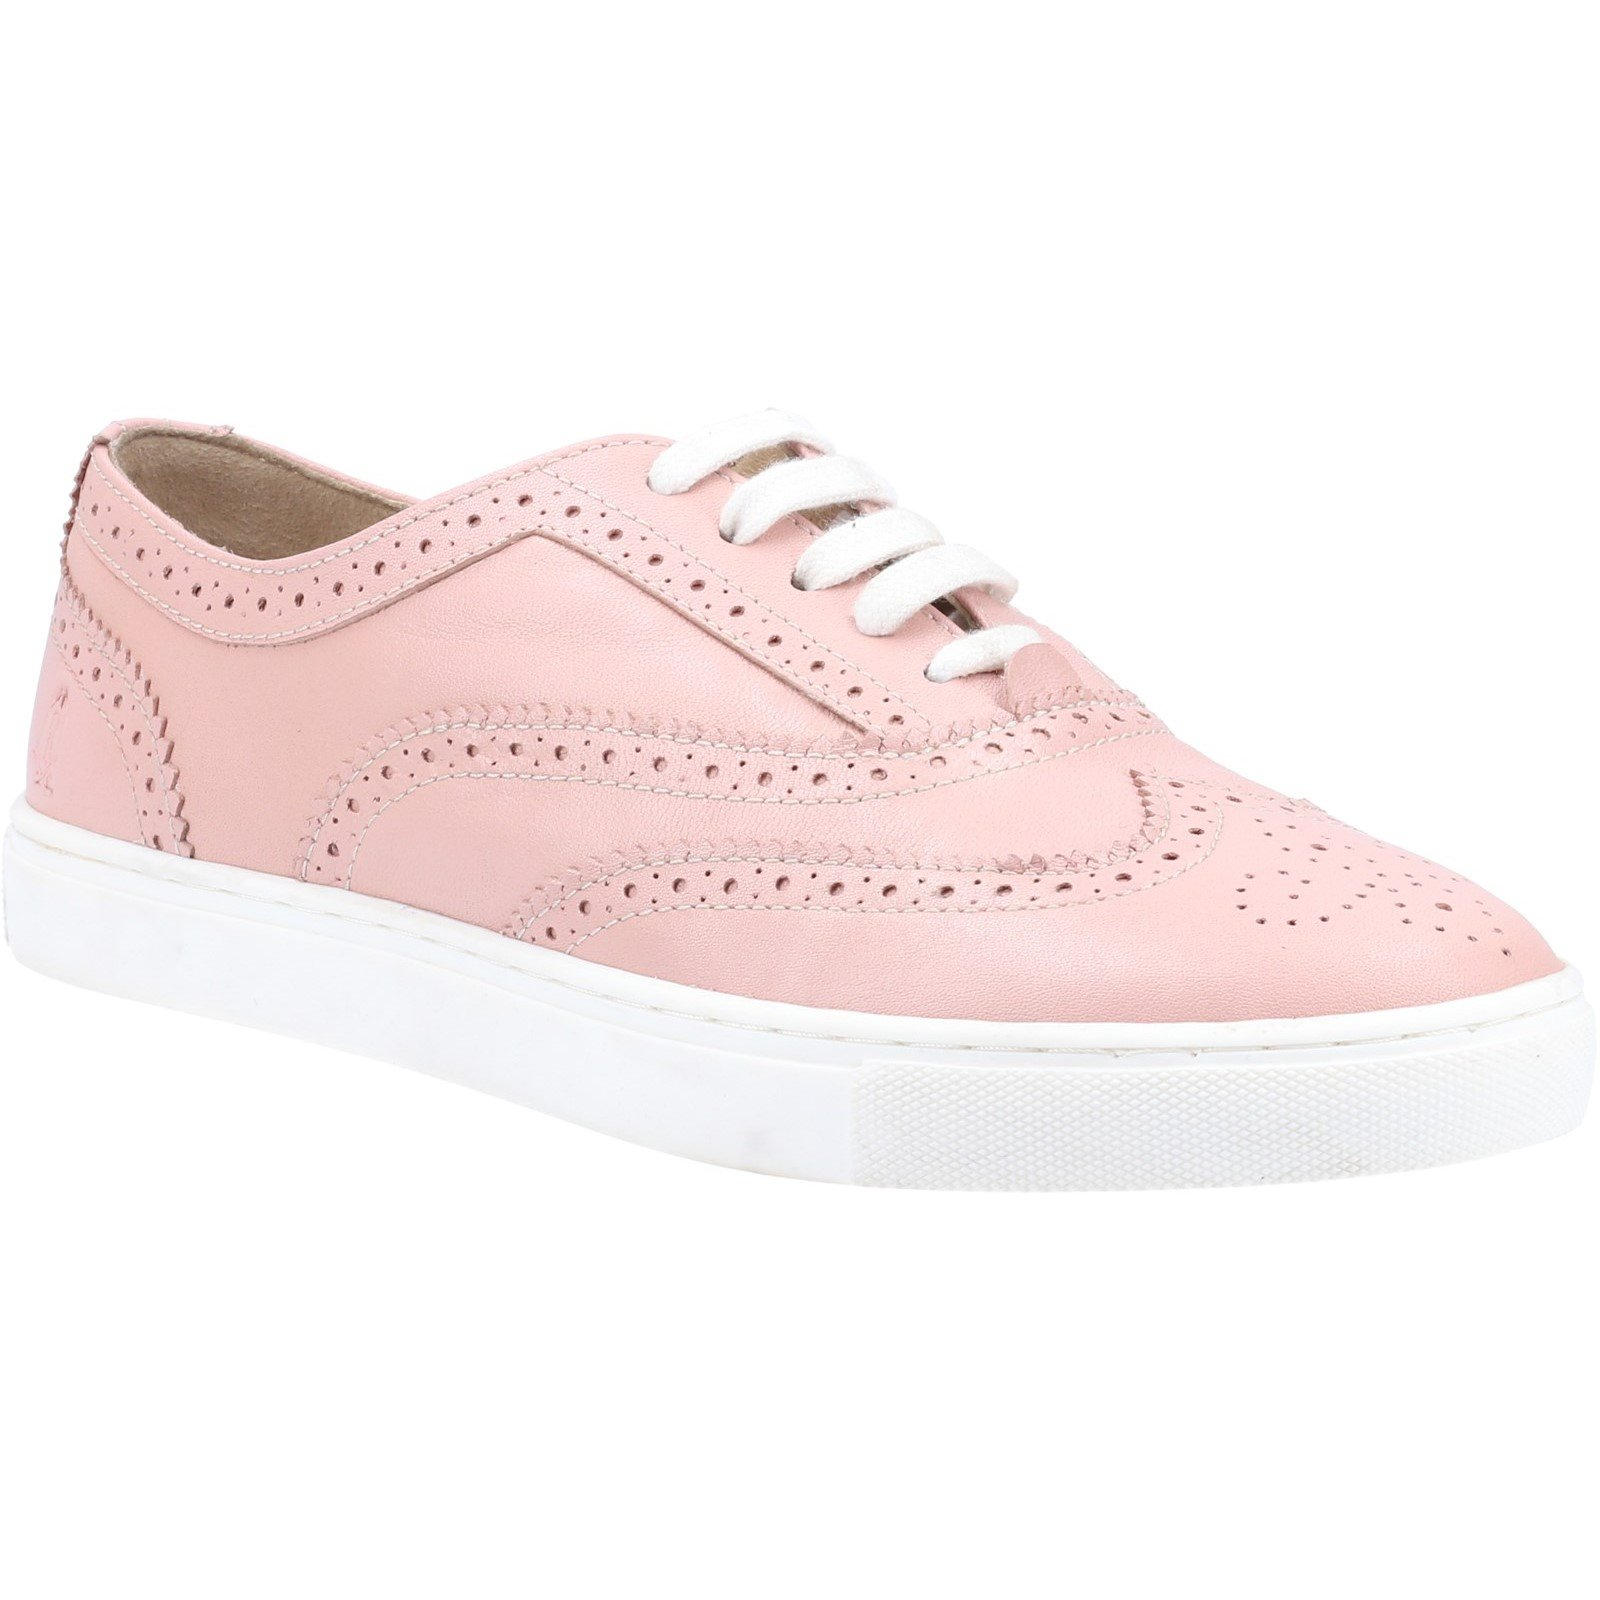 Hush Puppies Women's Tammy Trainer Various Colours 32847 - Blush 6